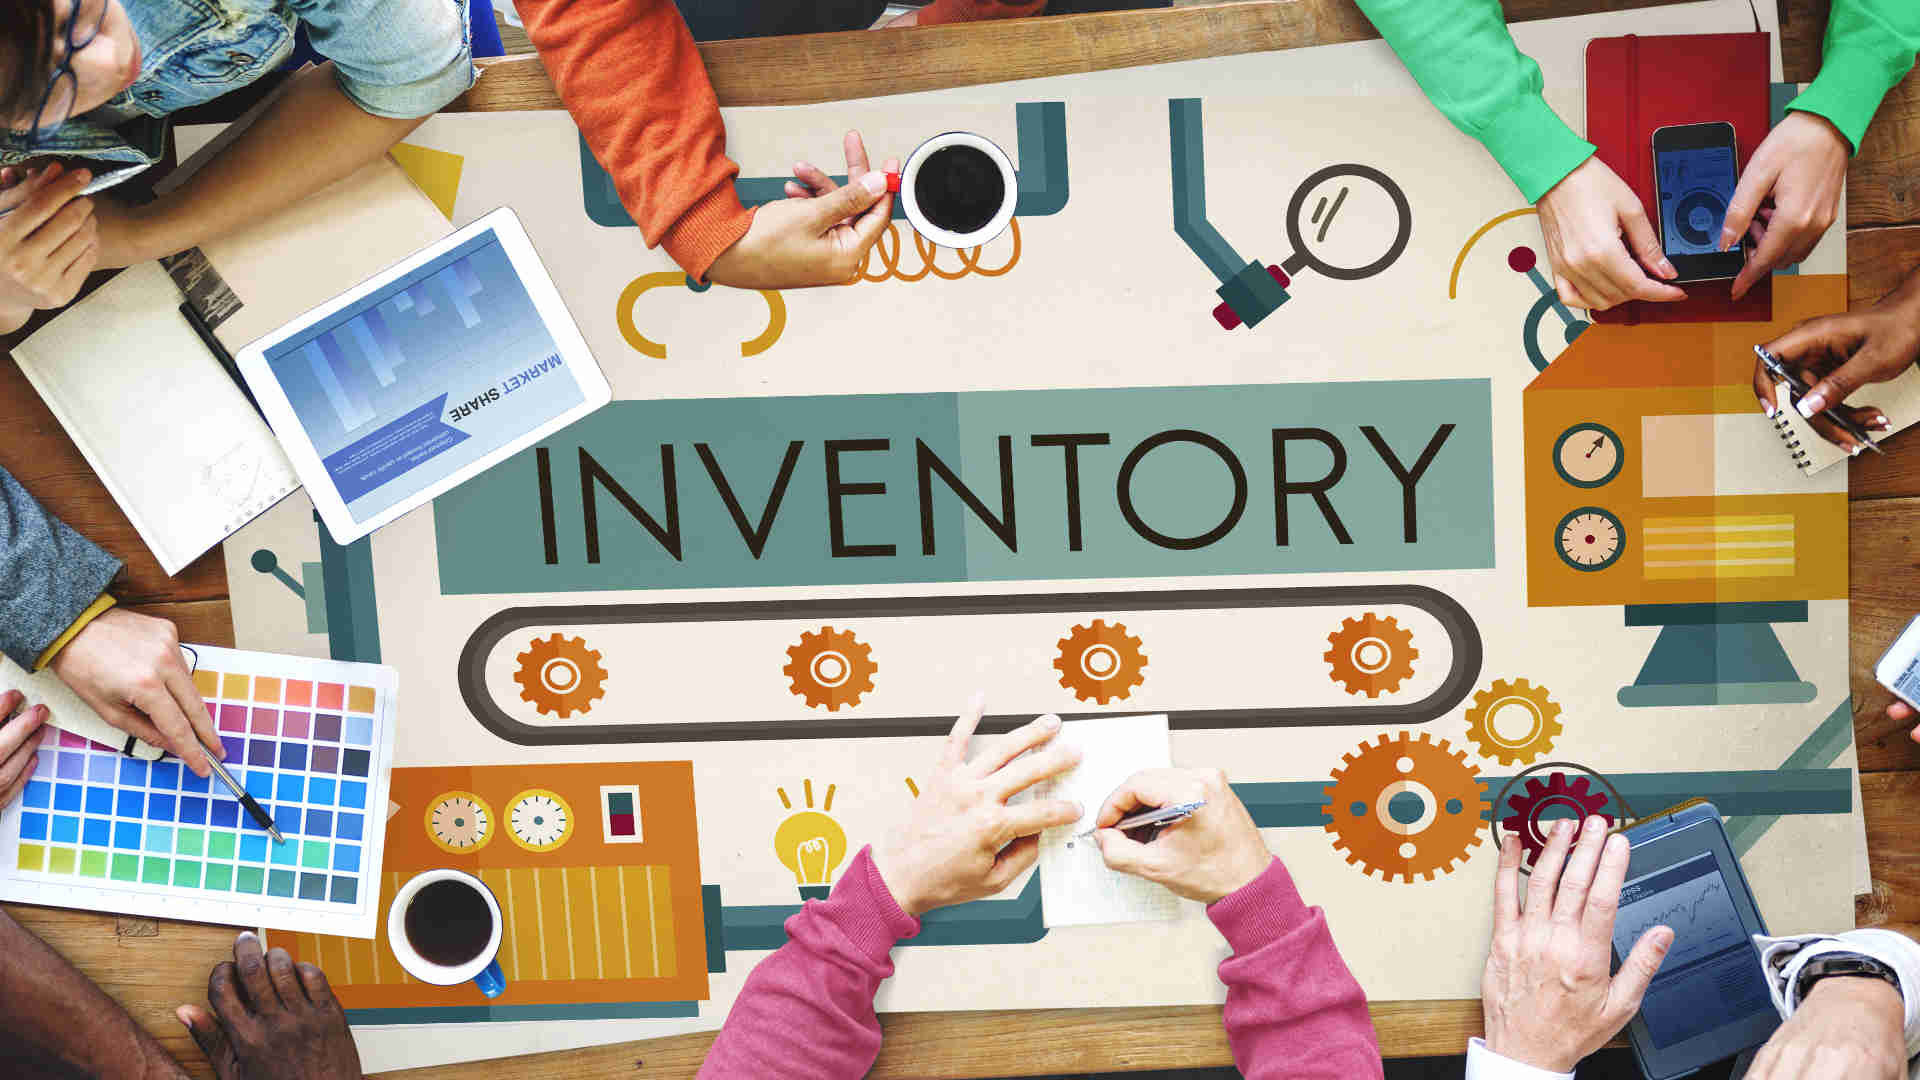 13 Critical Inventory Management KPIs You've Got to Monitor